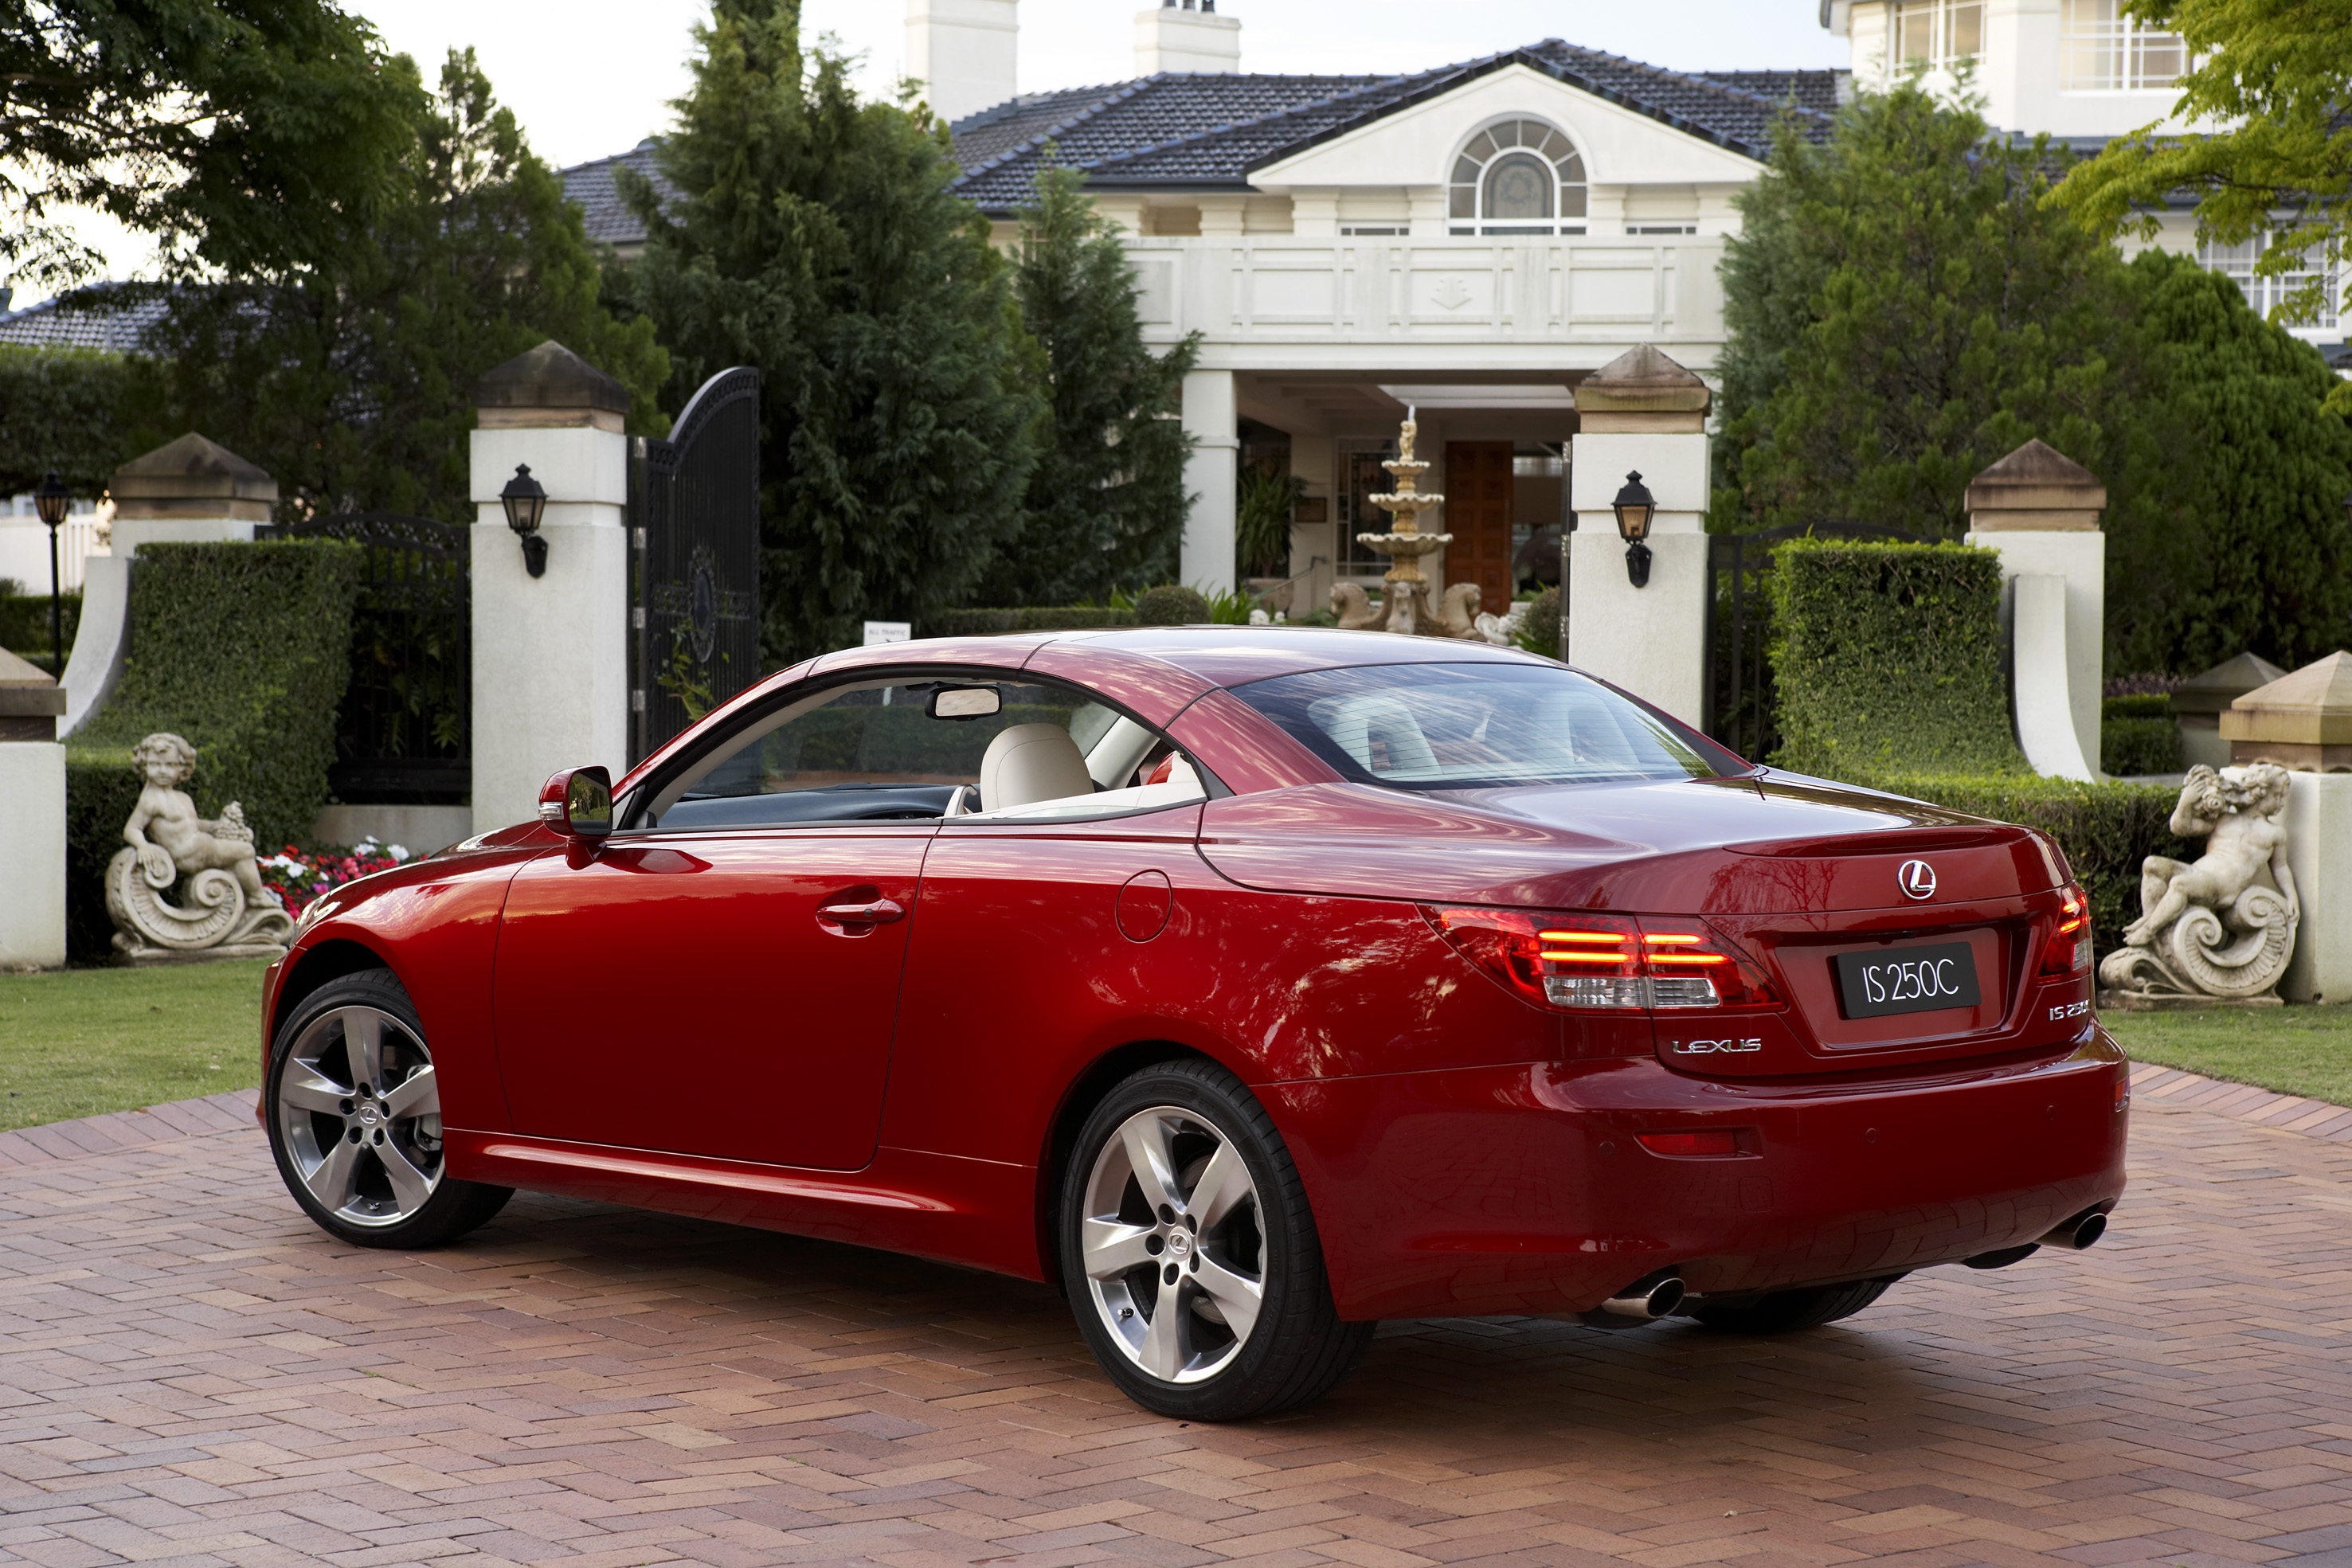 Lexus is250c photo - 7